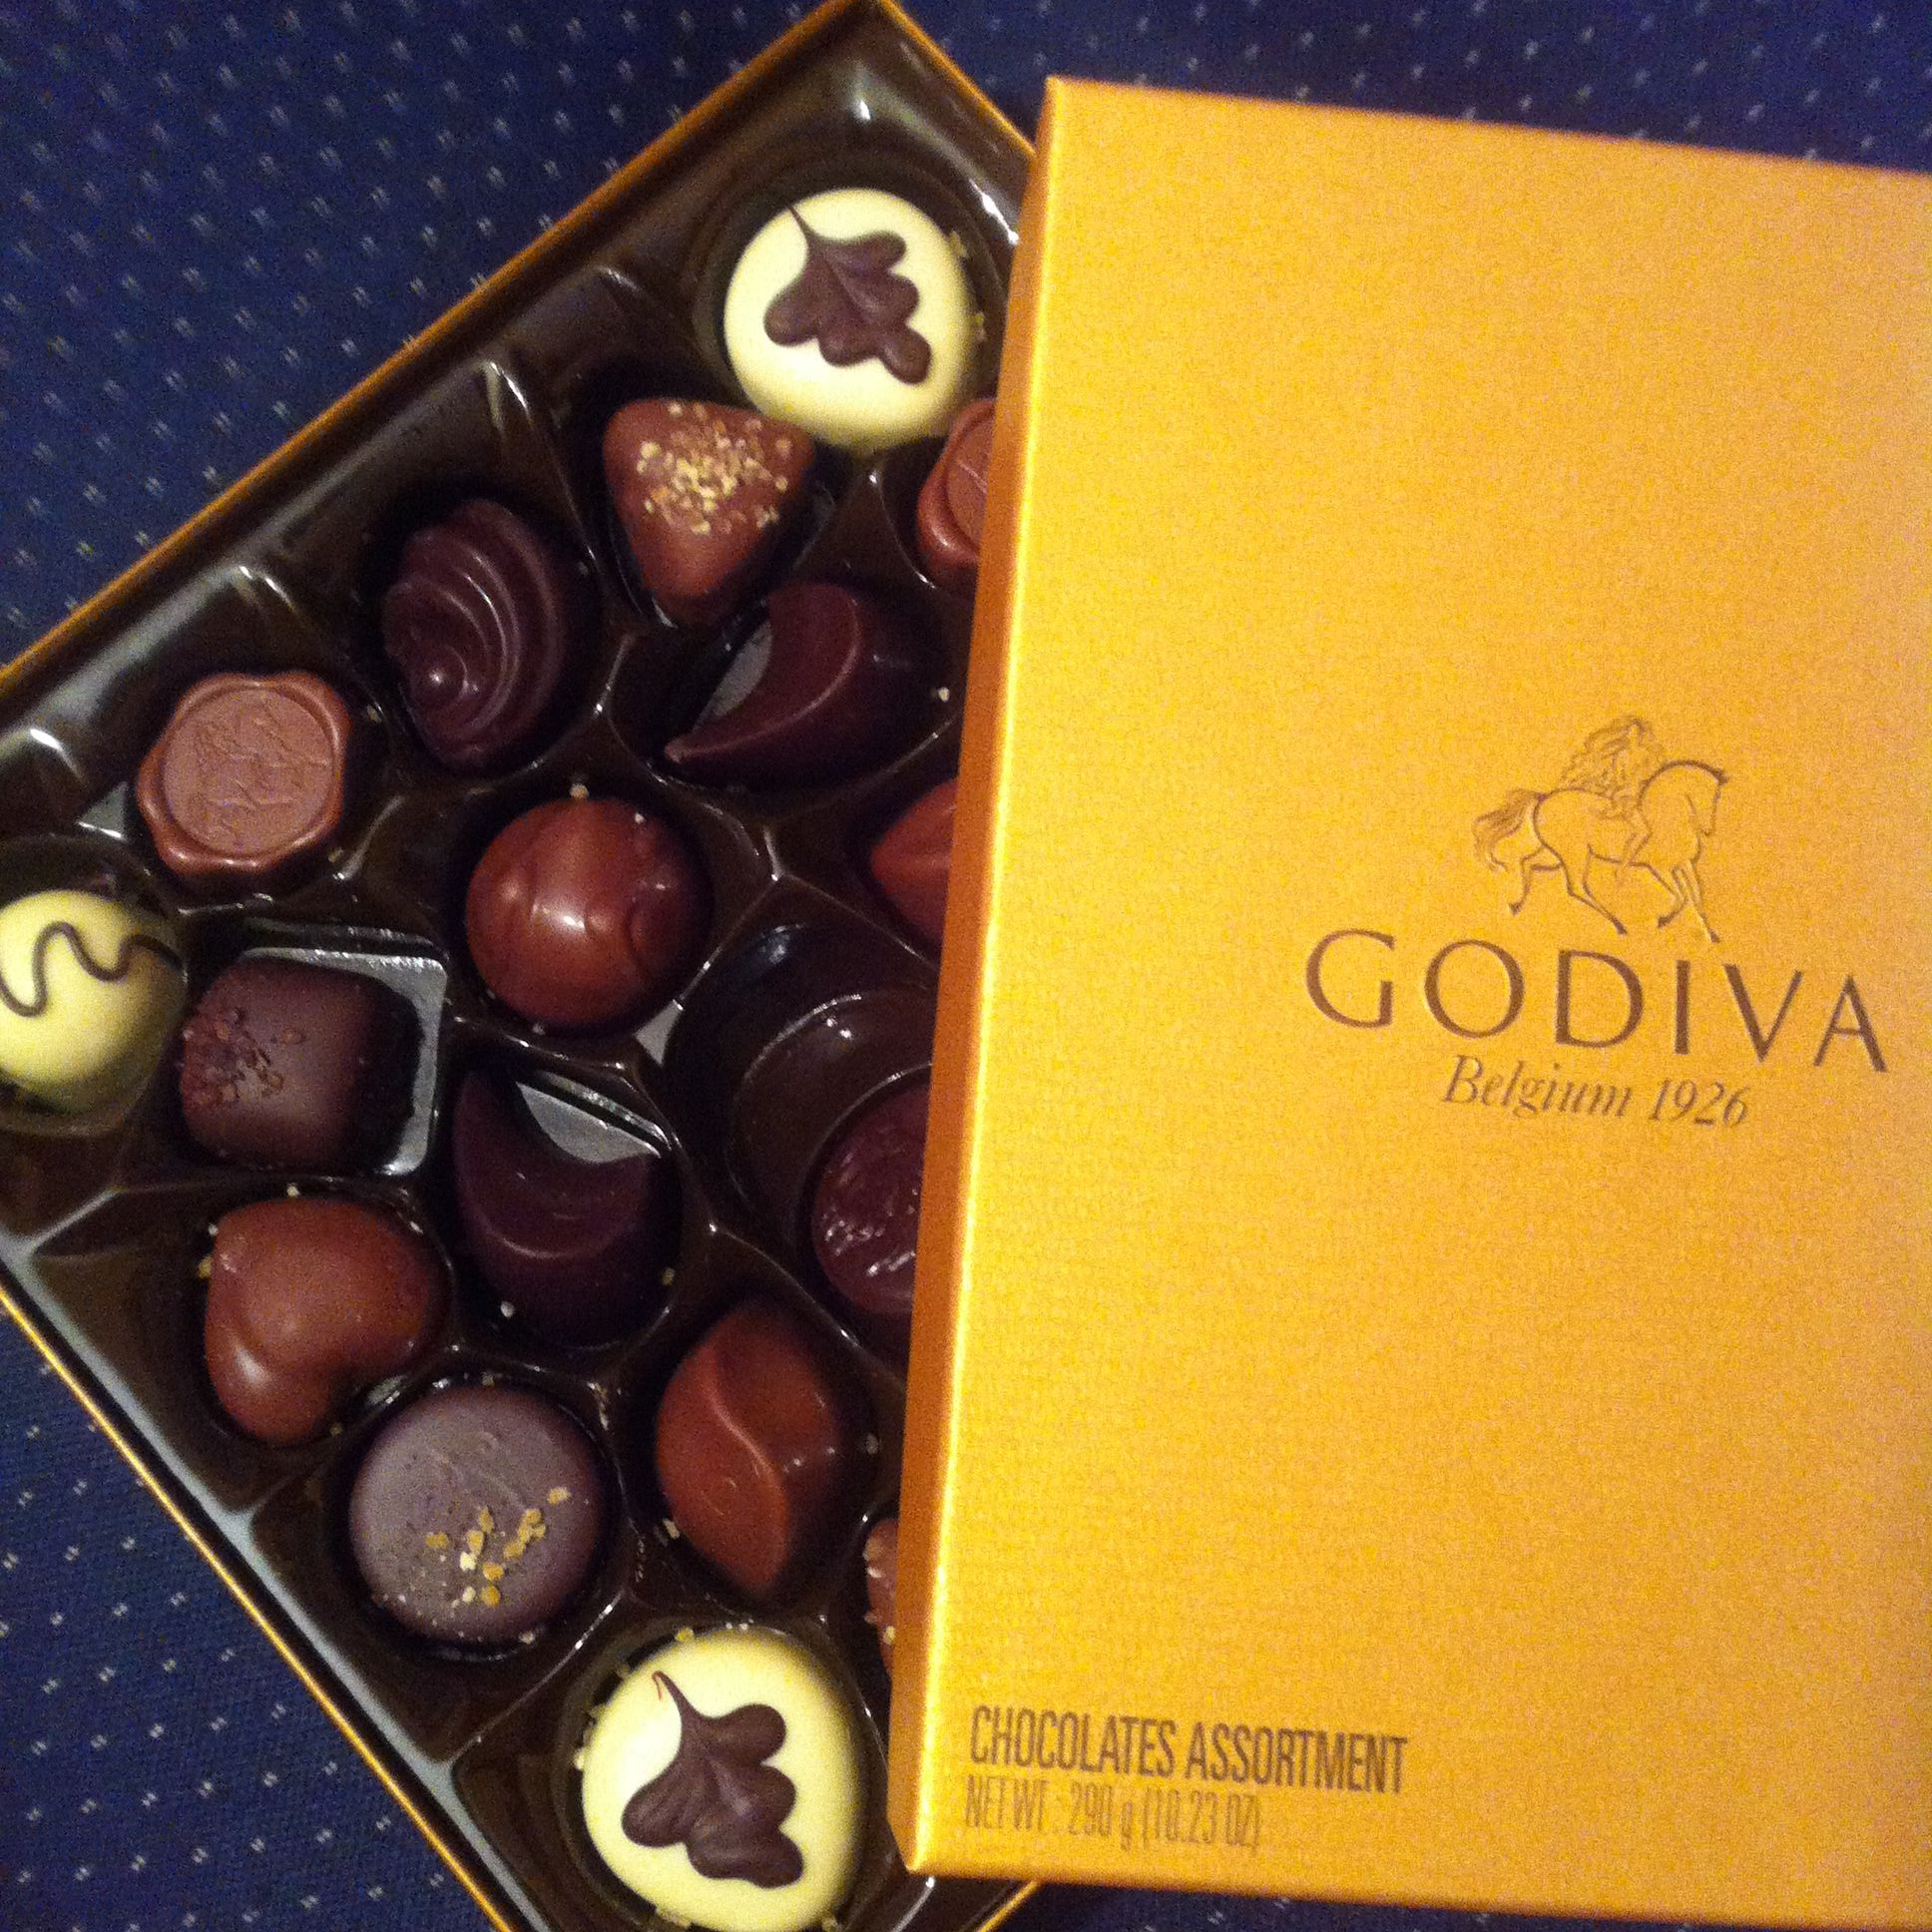 Godiva chocolate - when only the best will do... | Chocolate ...